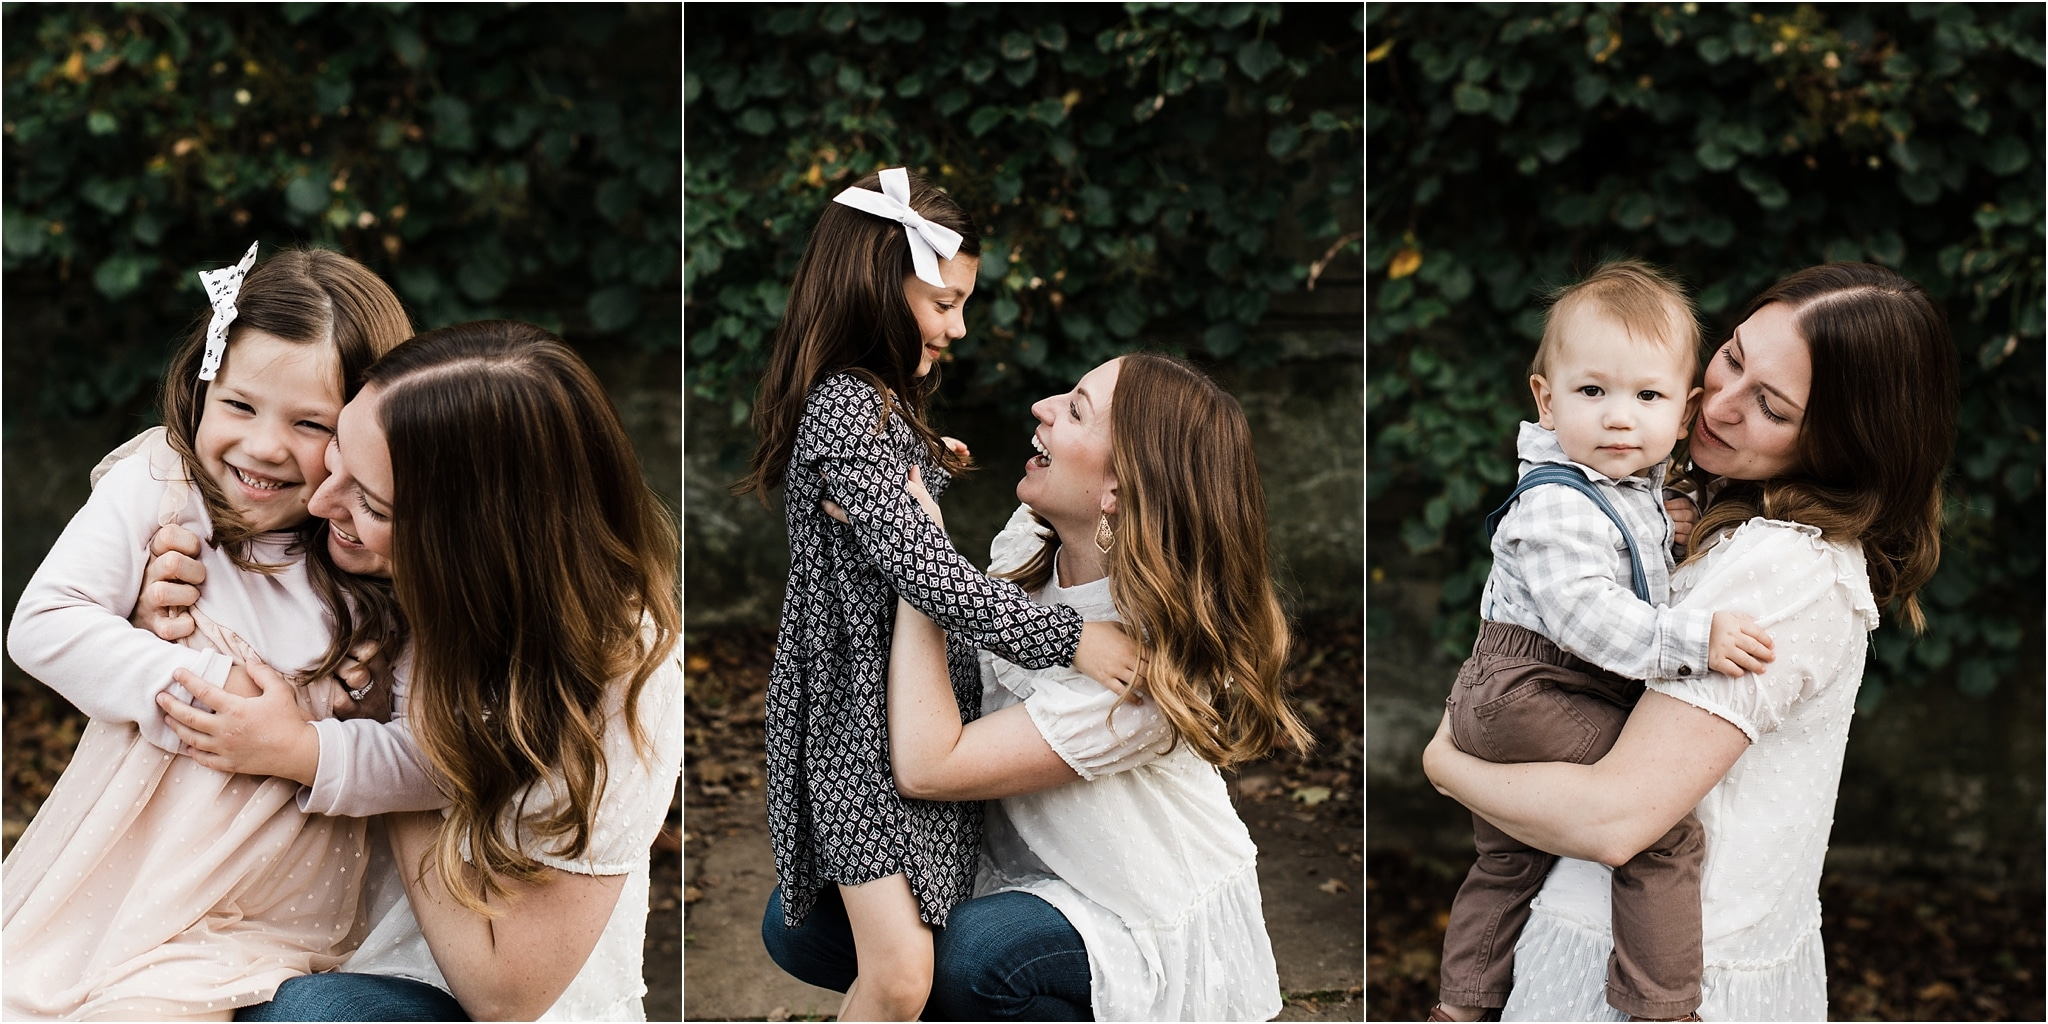 photos of a mother hugging and holding her children